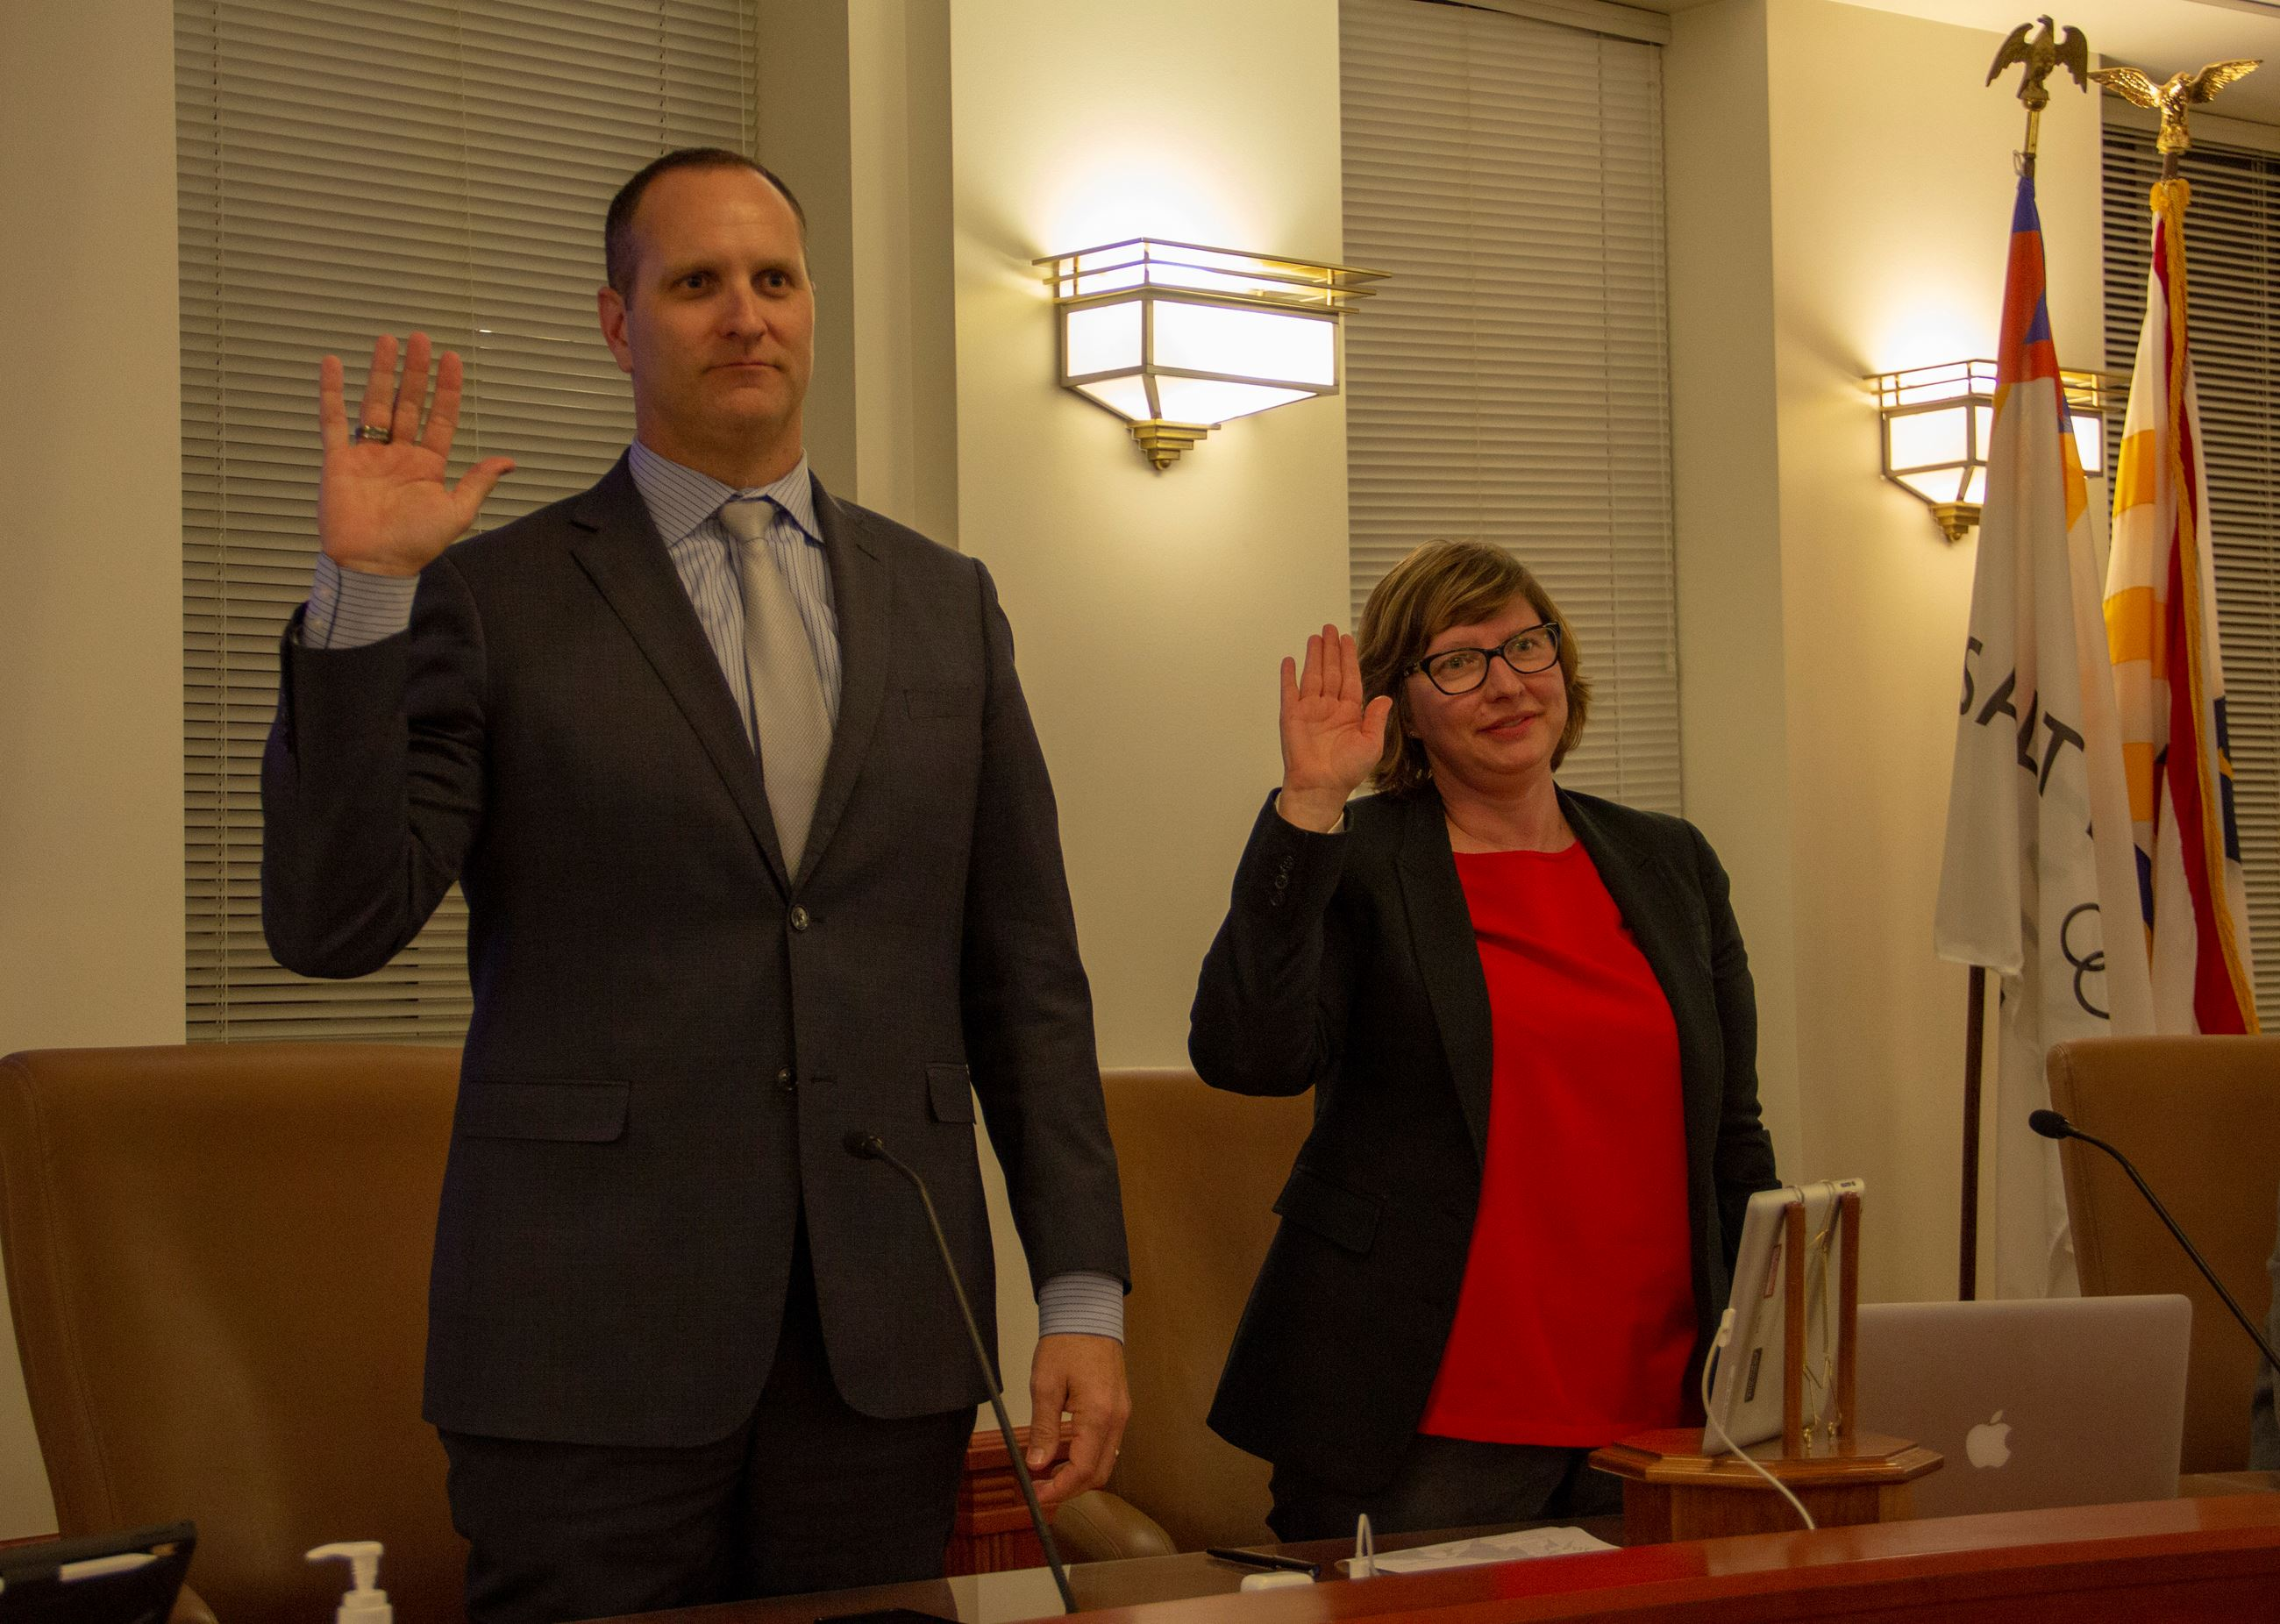 Council Members Ben Nadolski and Angela Choberka elected to Council Leadership